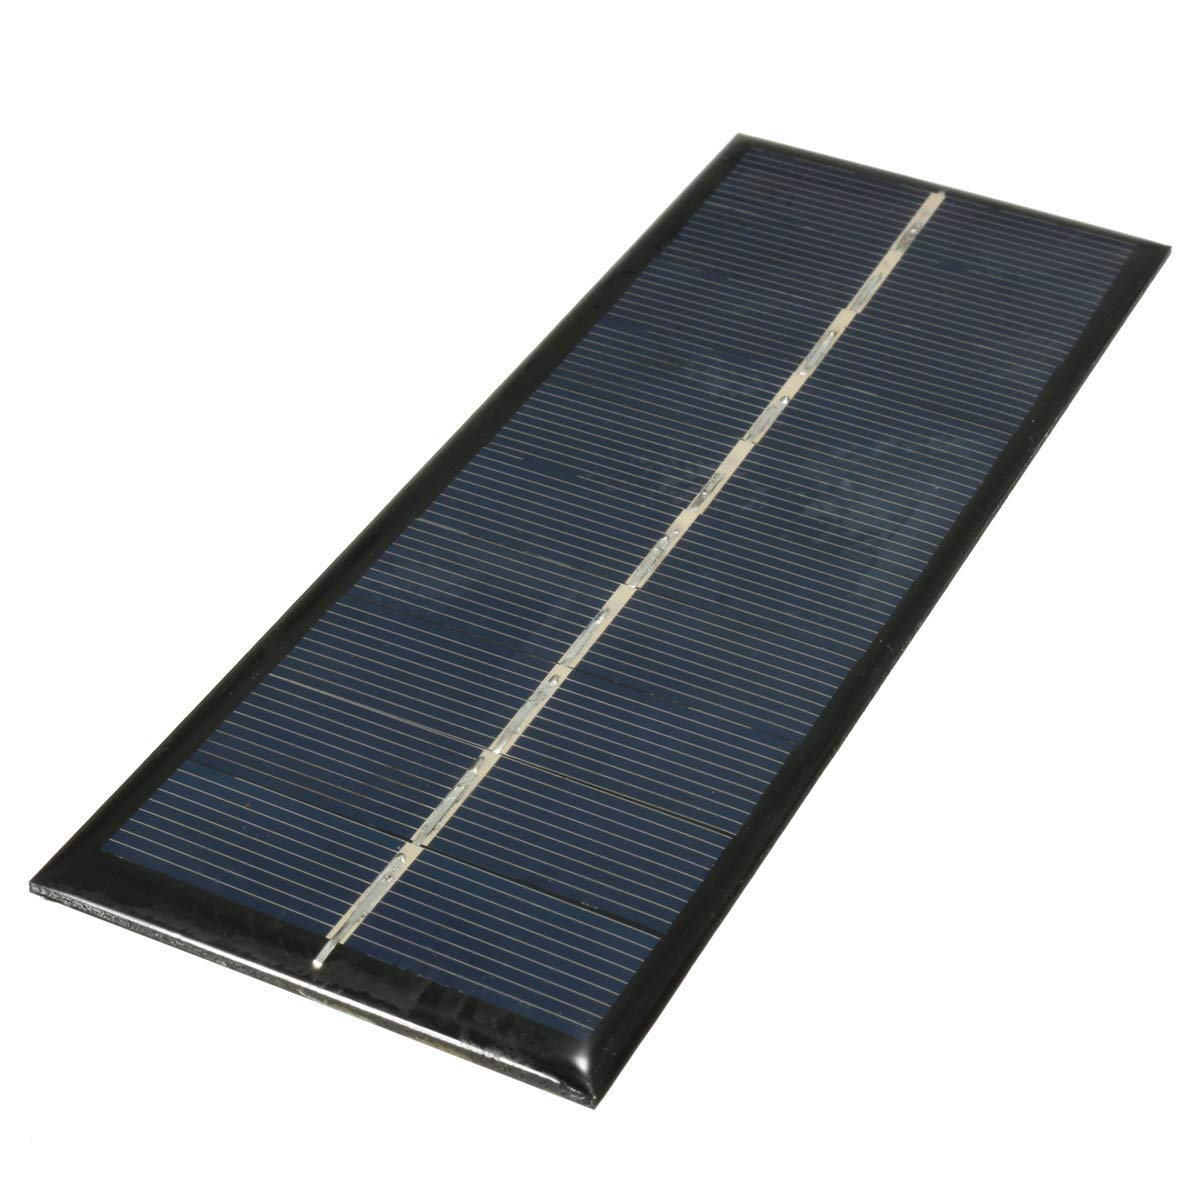 1.3W 5V 163603mm Mini Solar Panel Module For Cell Phone Battery Charger - Arduino Compatible SCM & DIY Kits Smart Robot & Solar Panel - 1 x Audio Cable for BOSE QC25 Headphone Unknown